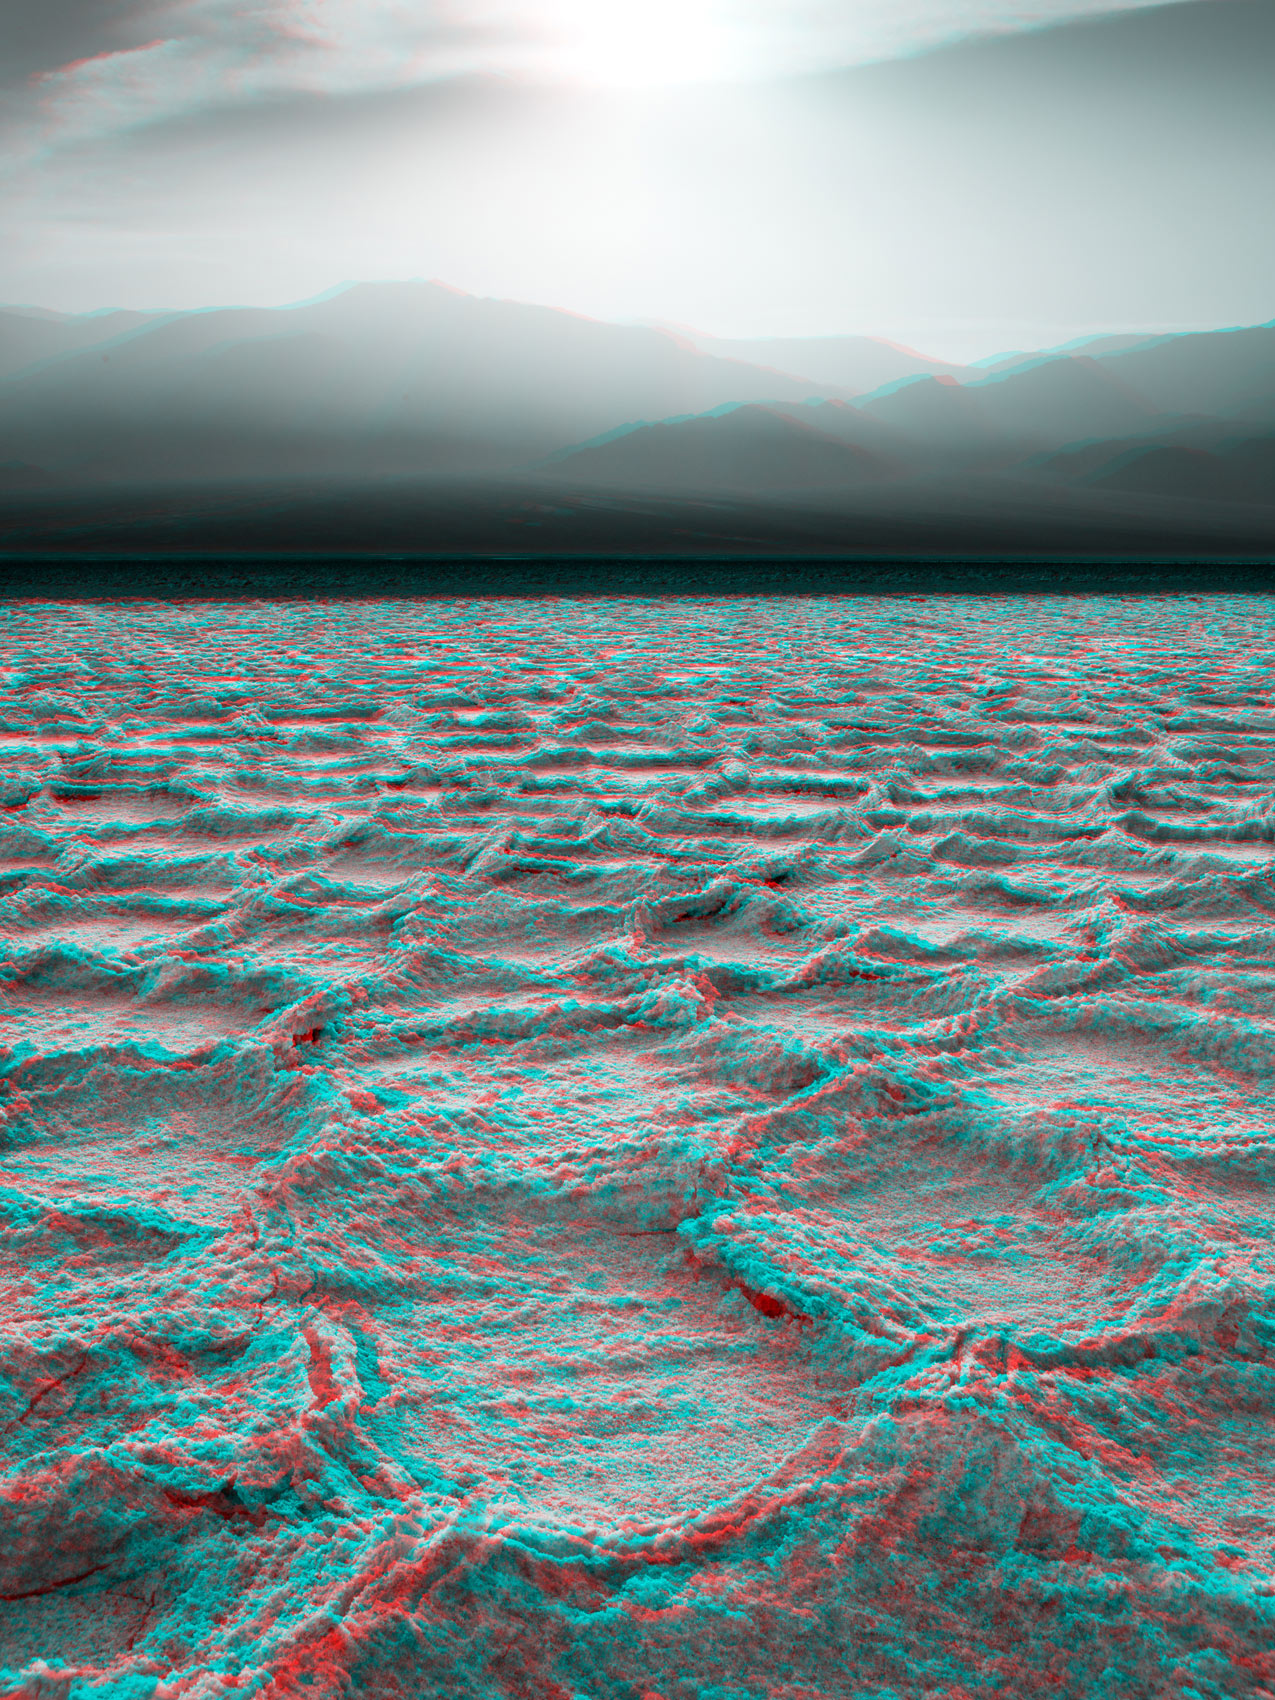 200416web-006-1303_DeathValley_Salt_3D-016